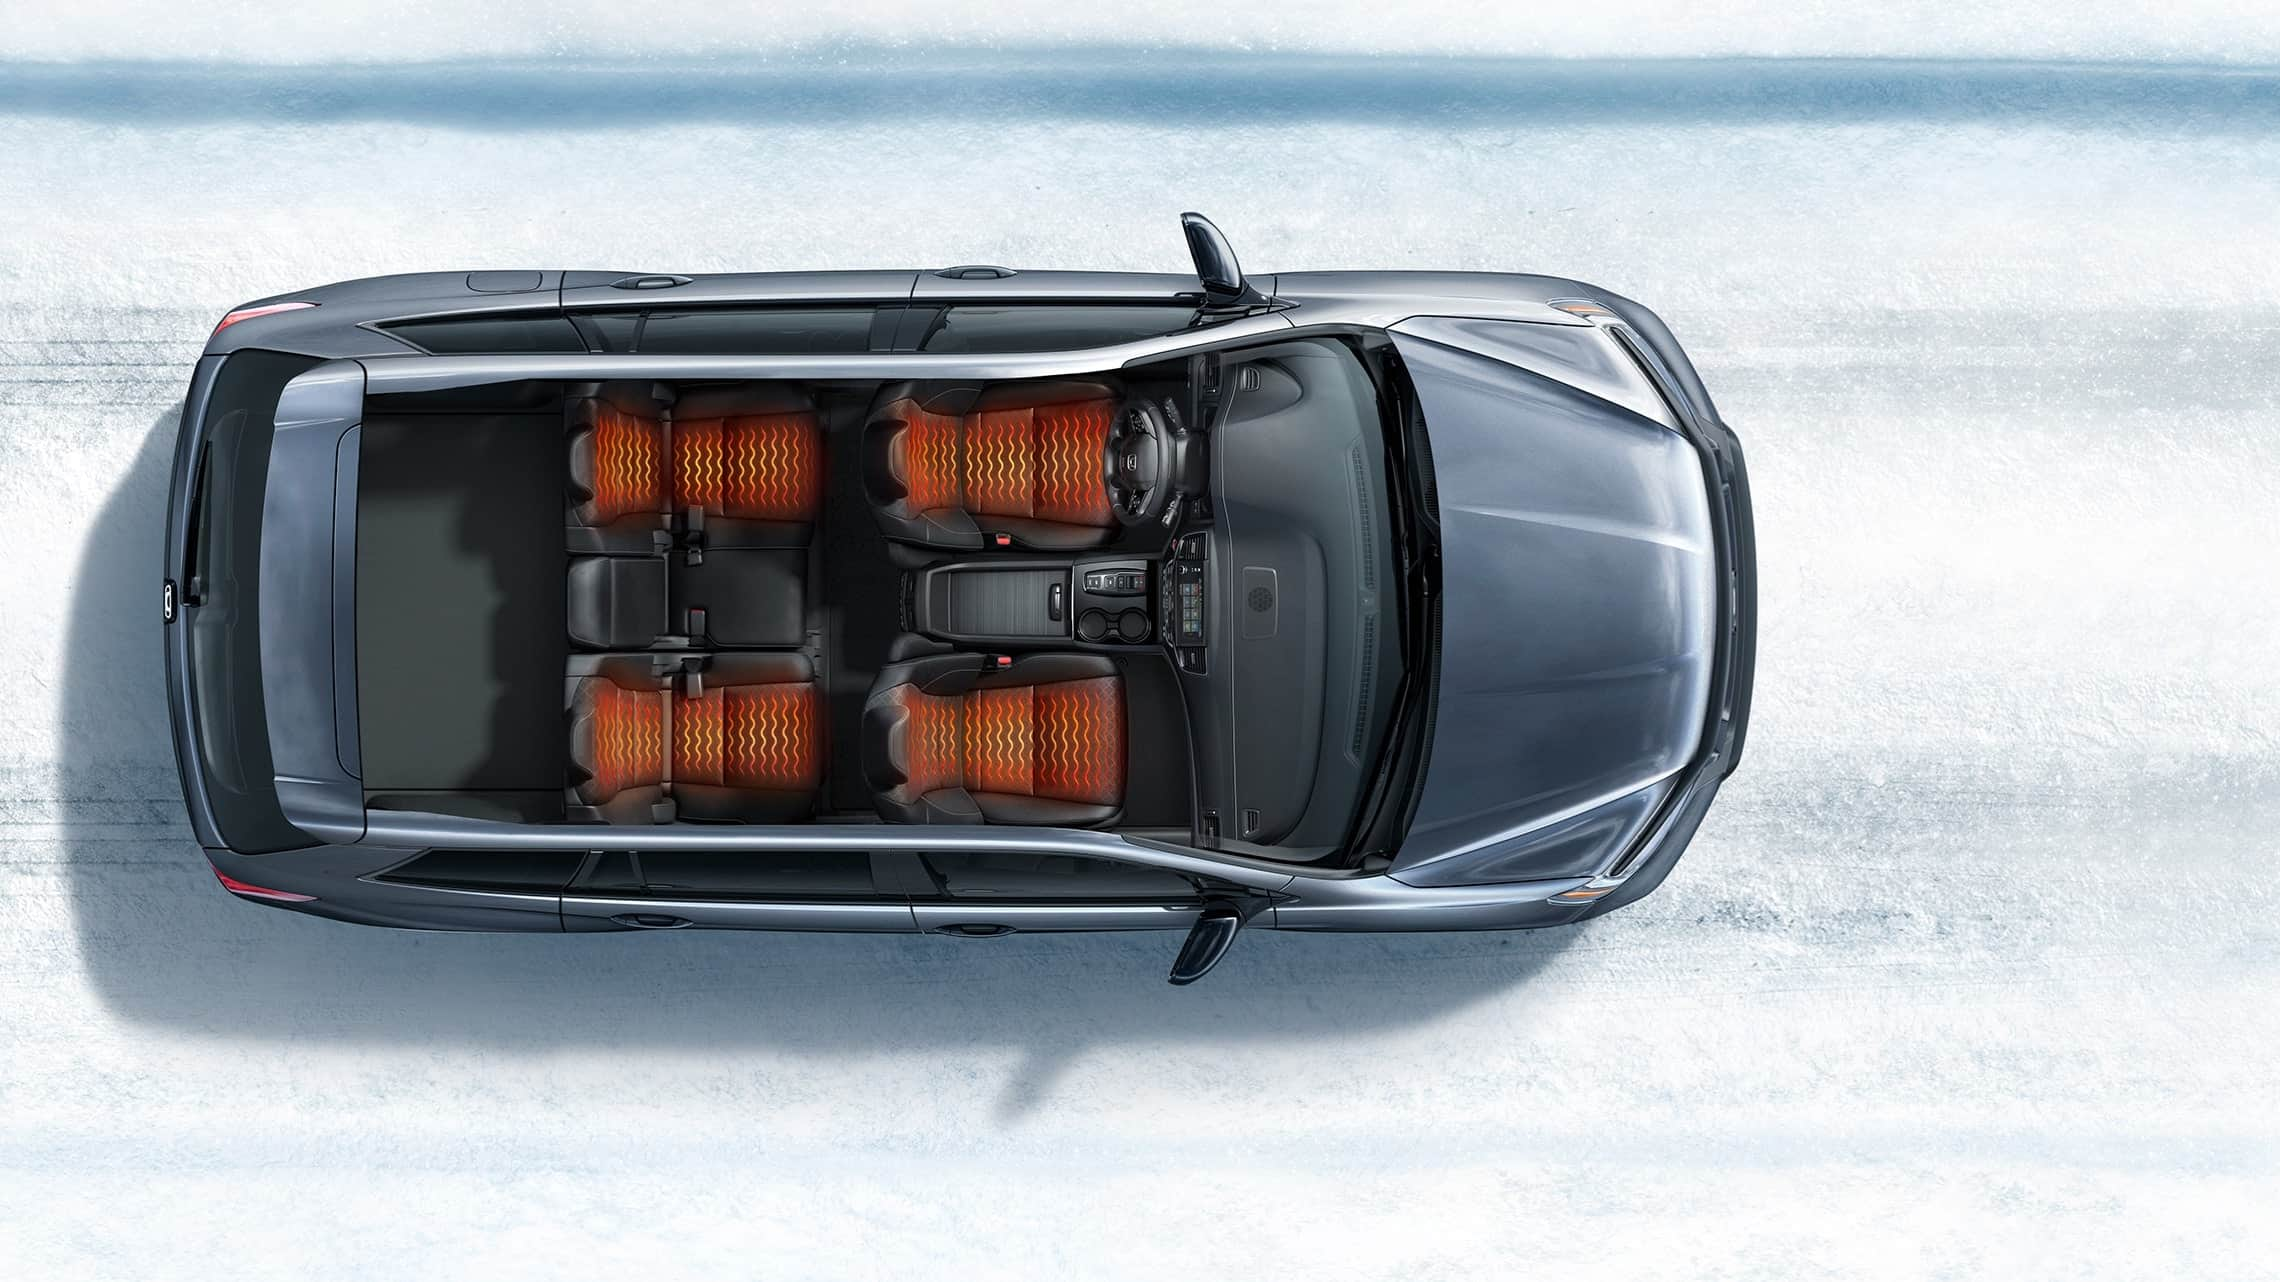 Overhead view of 2019 Honda Passport Elite demonstrating heated seats in a snowy road environment.